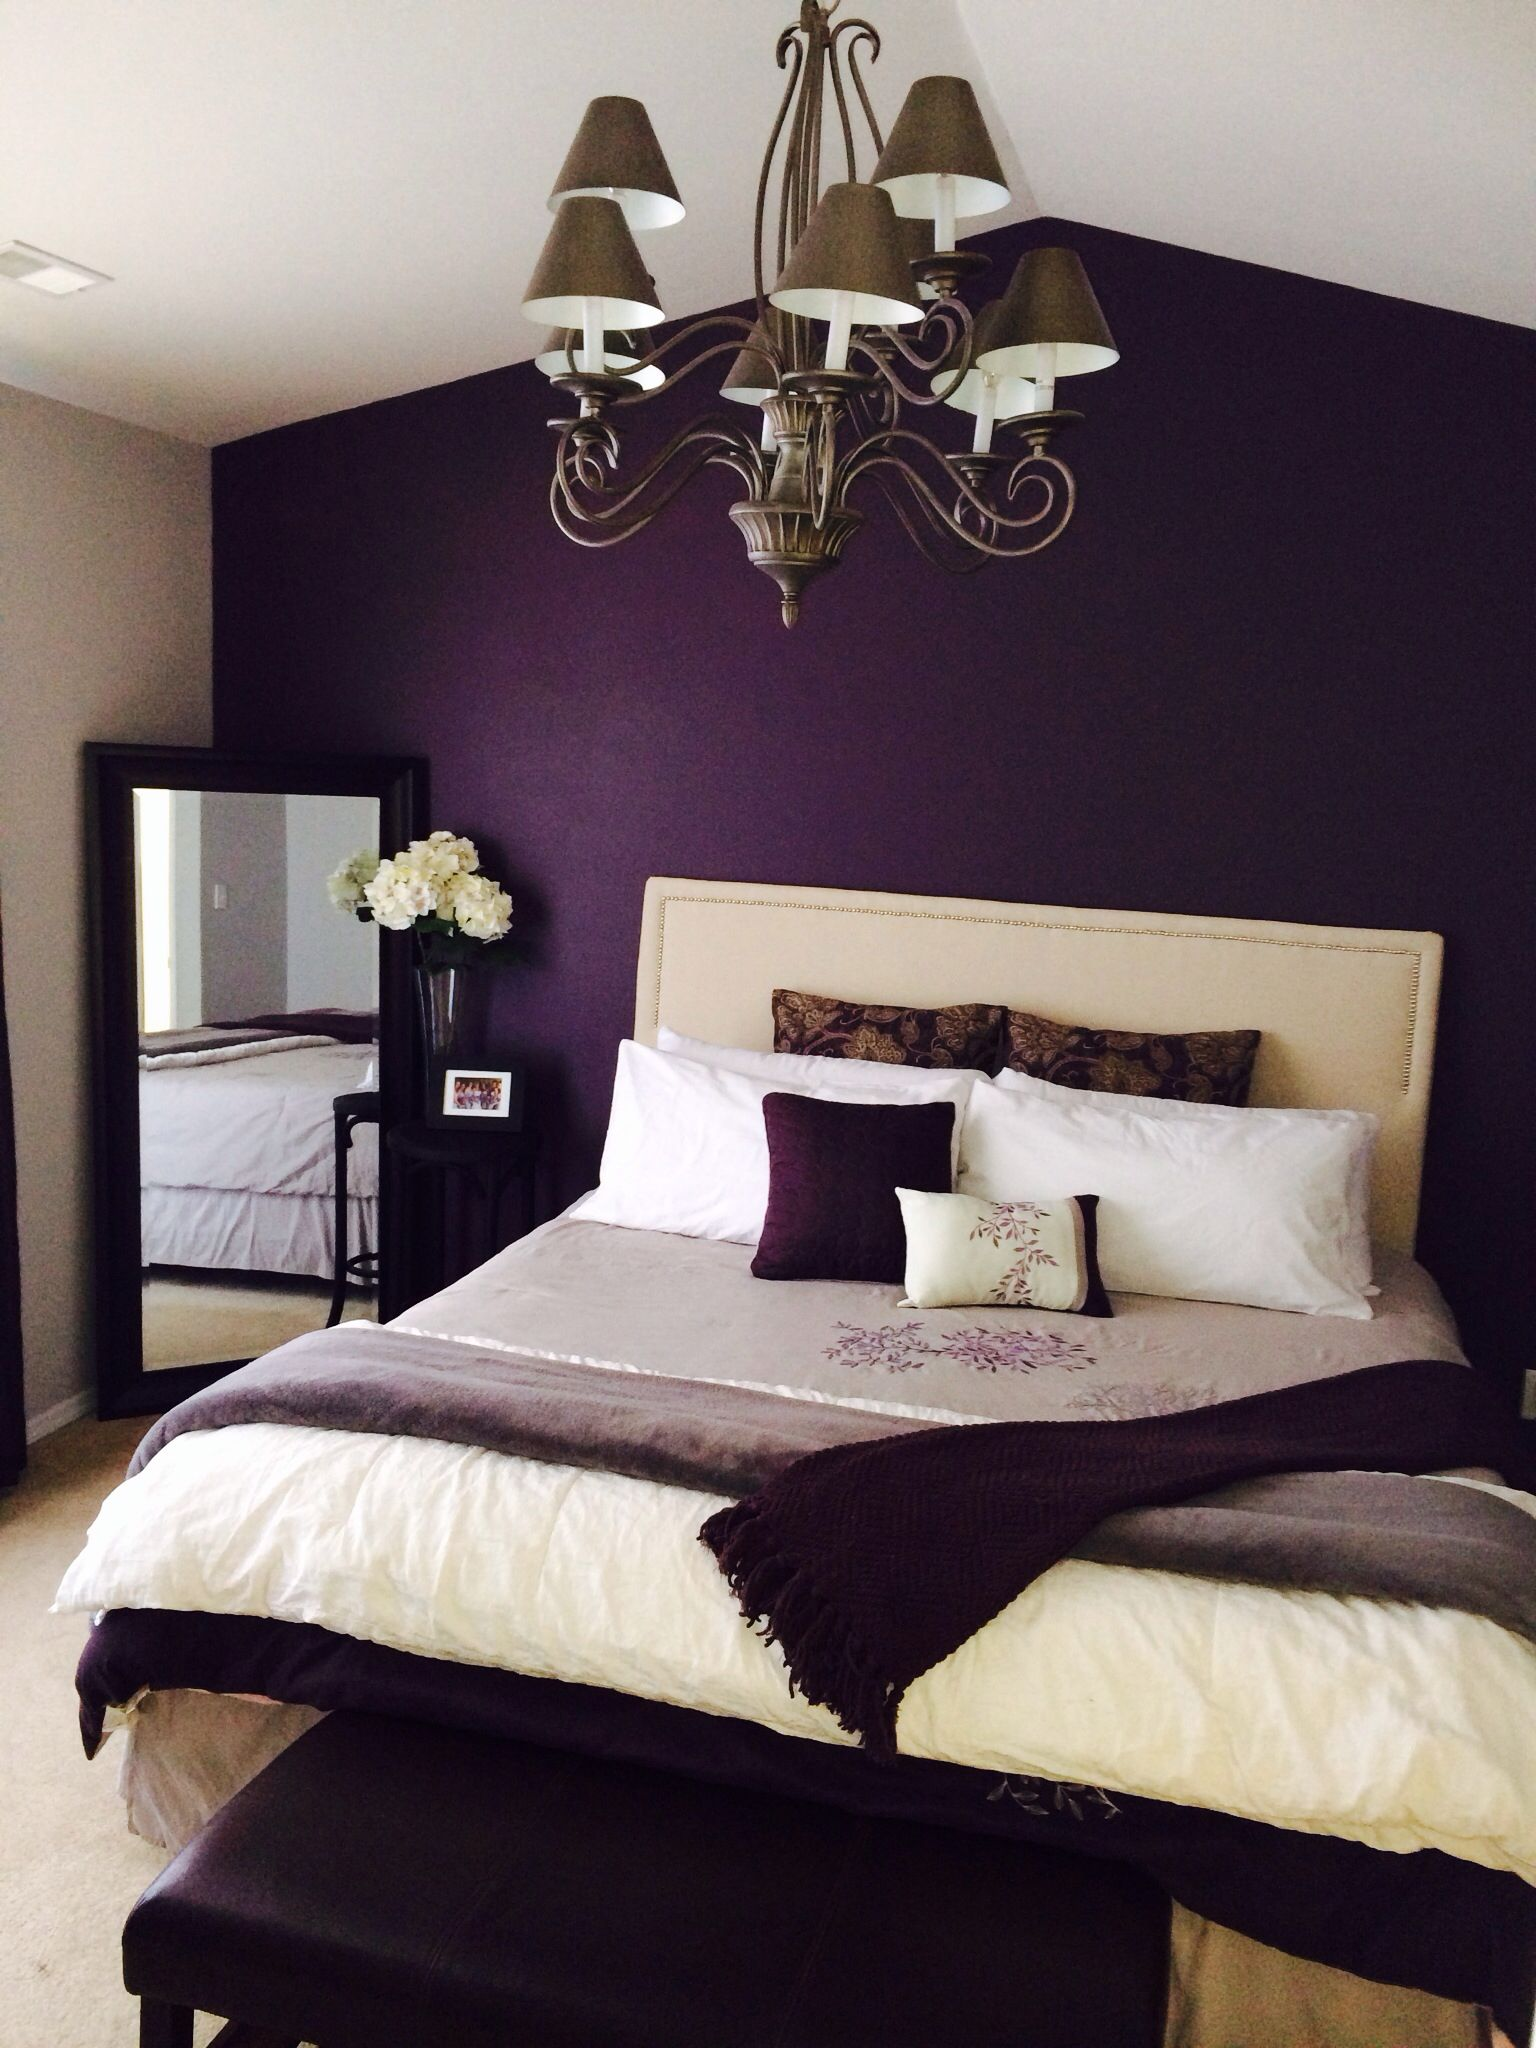 Interior Design Bedroom Purple latest 30 romantic bedroom ideas to make the love happen